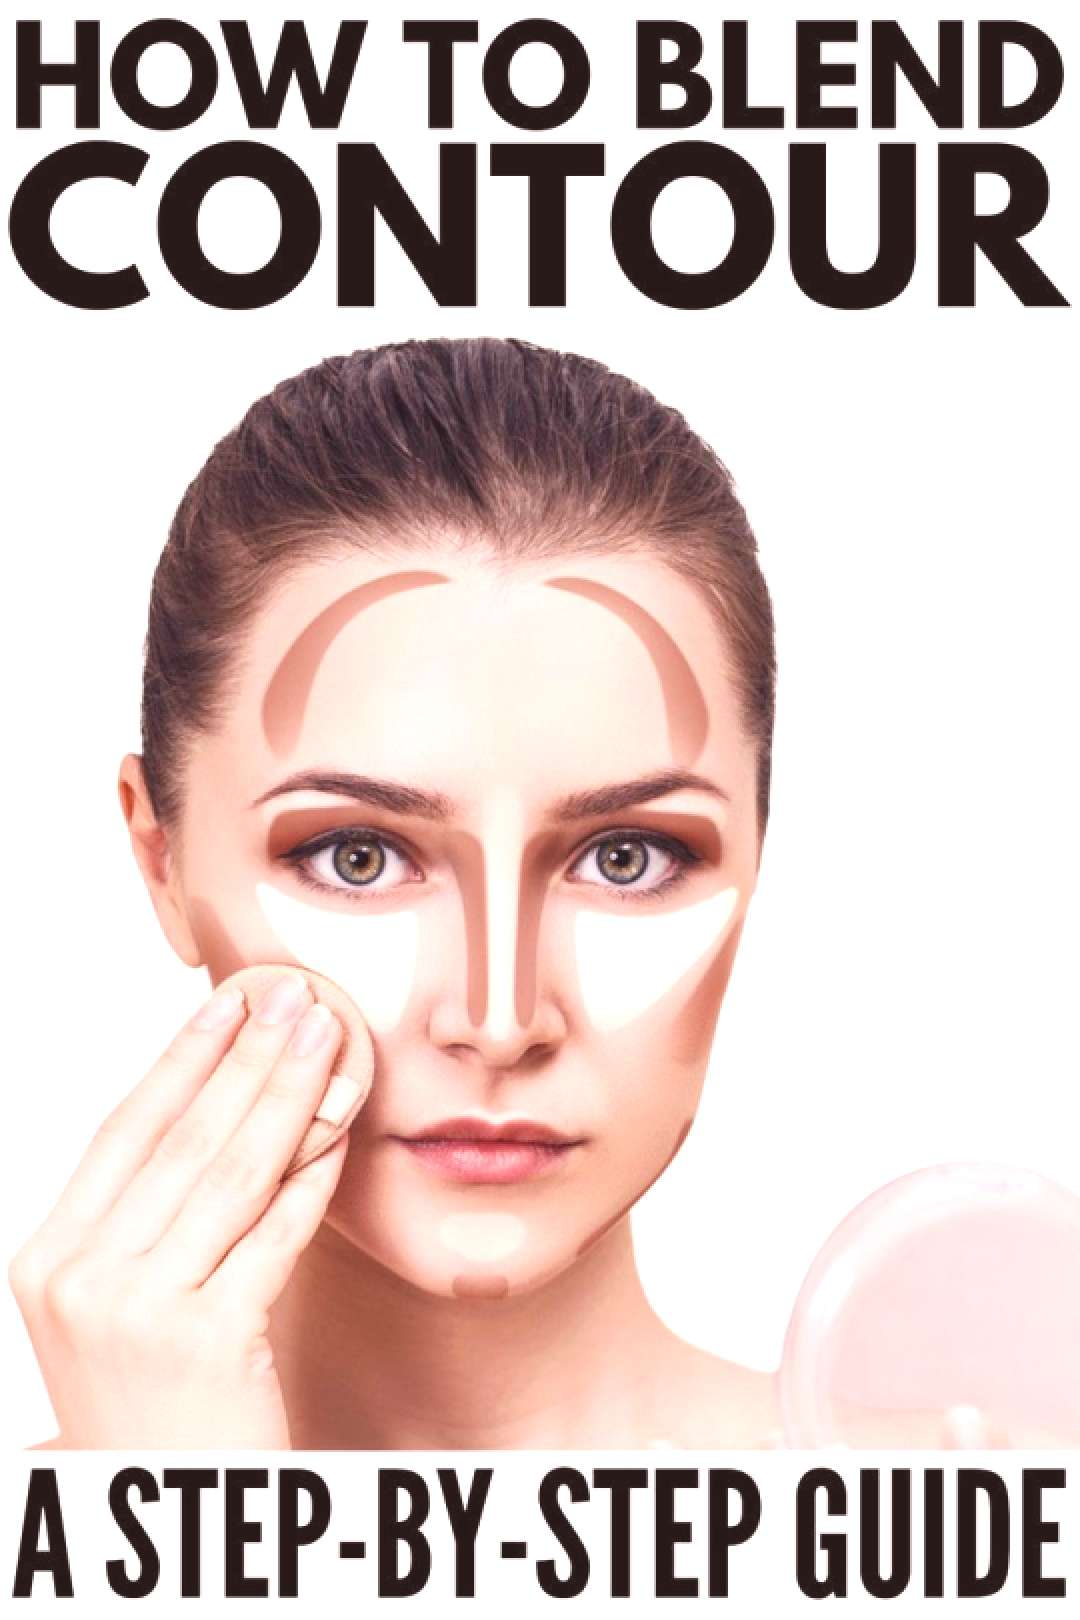 How to Blend Contour: A Step by Step Guide | If youre looking for makeup tips and tutorials to teac